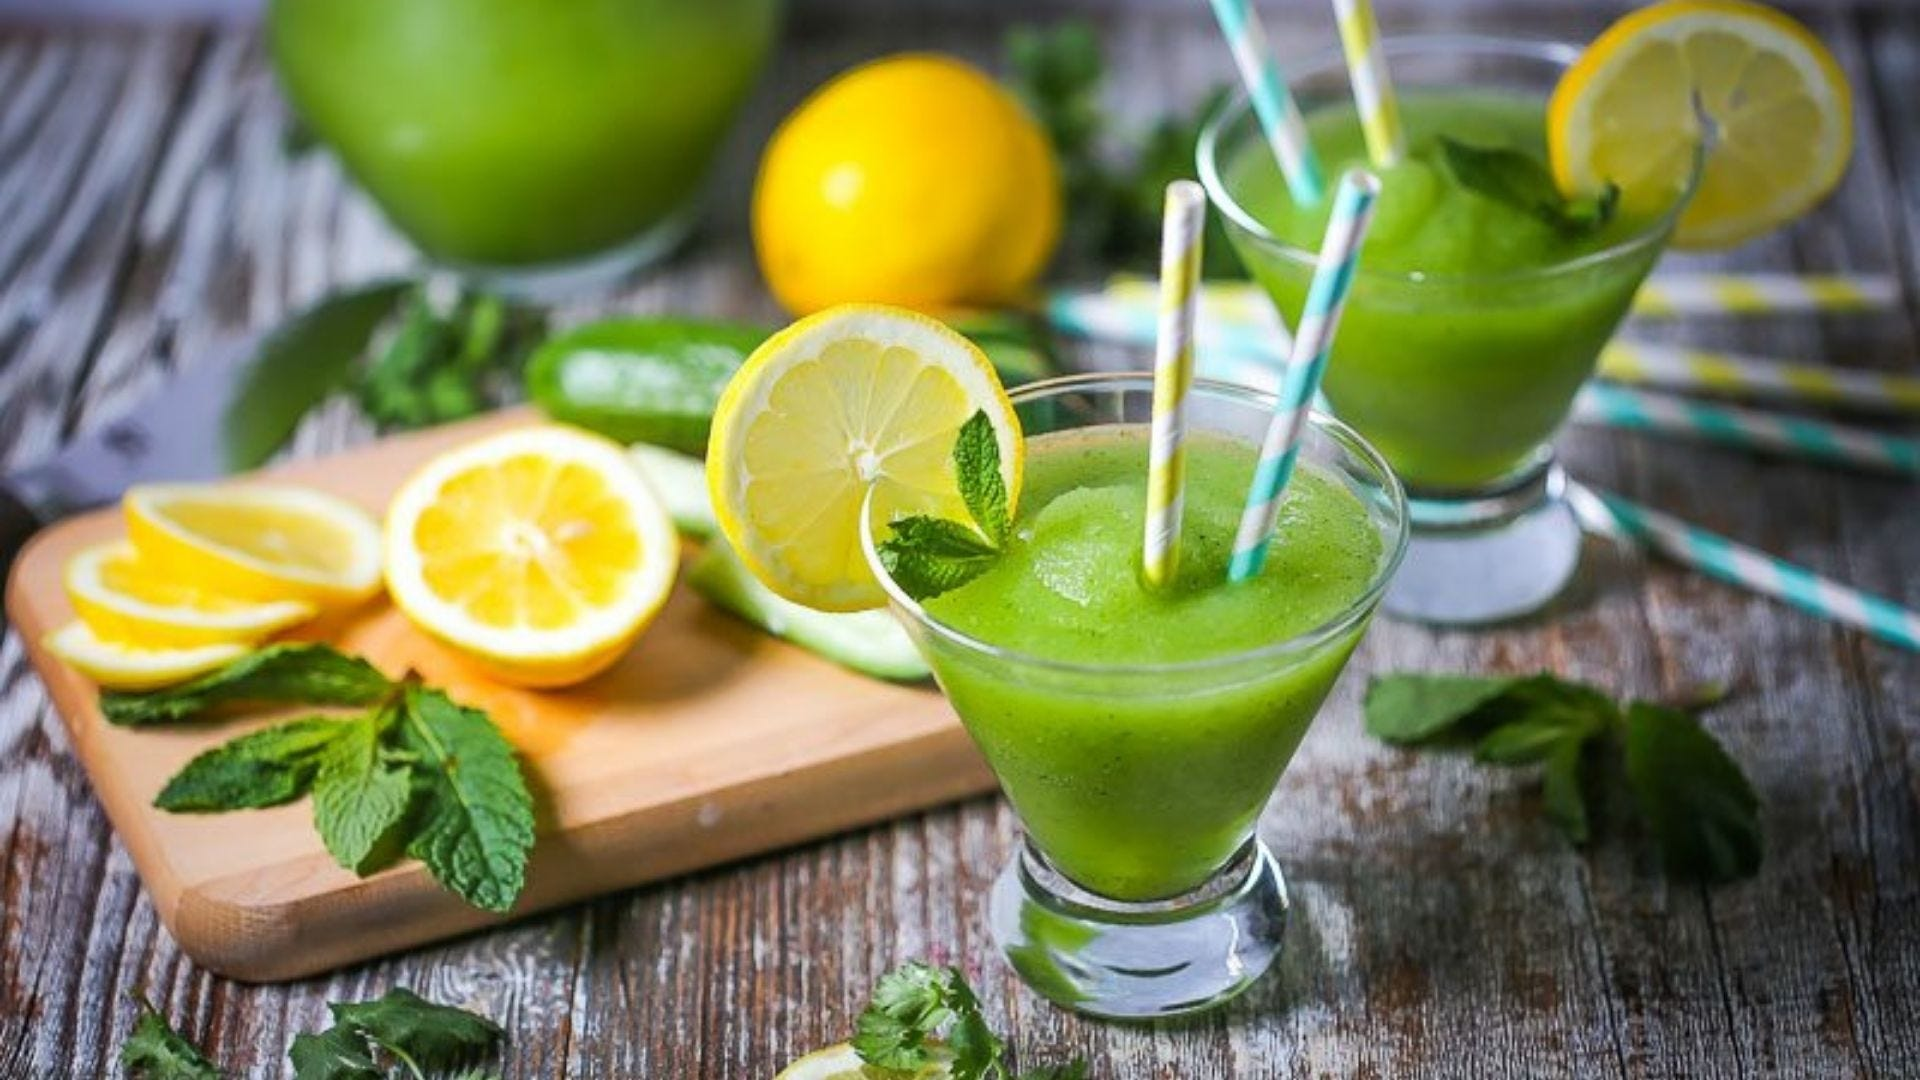 Frozen green cocktails next to lemons and mint